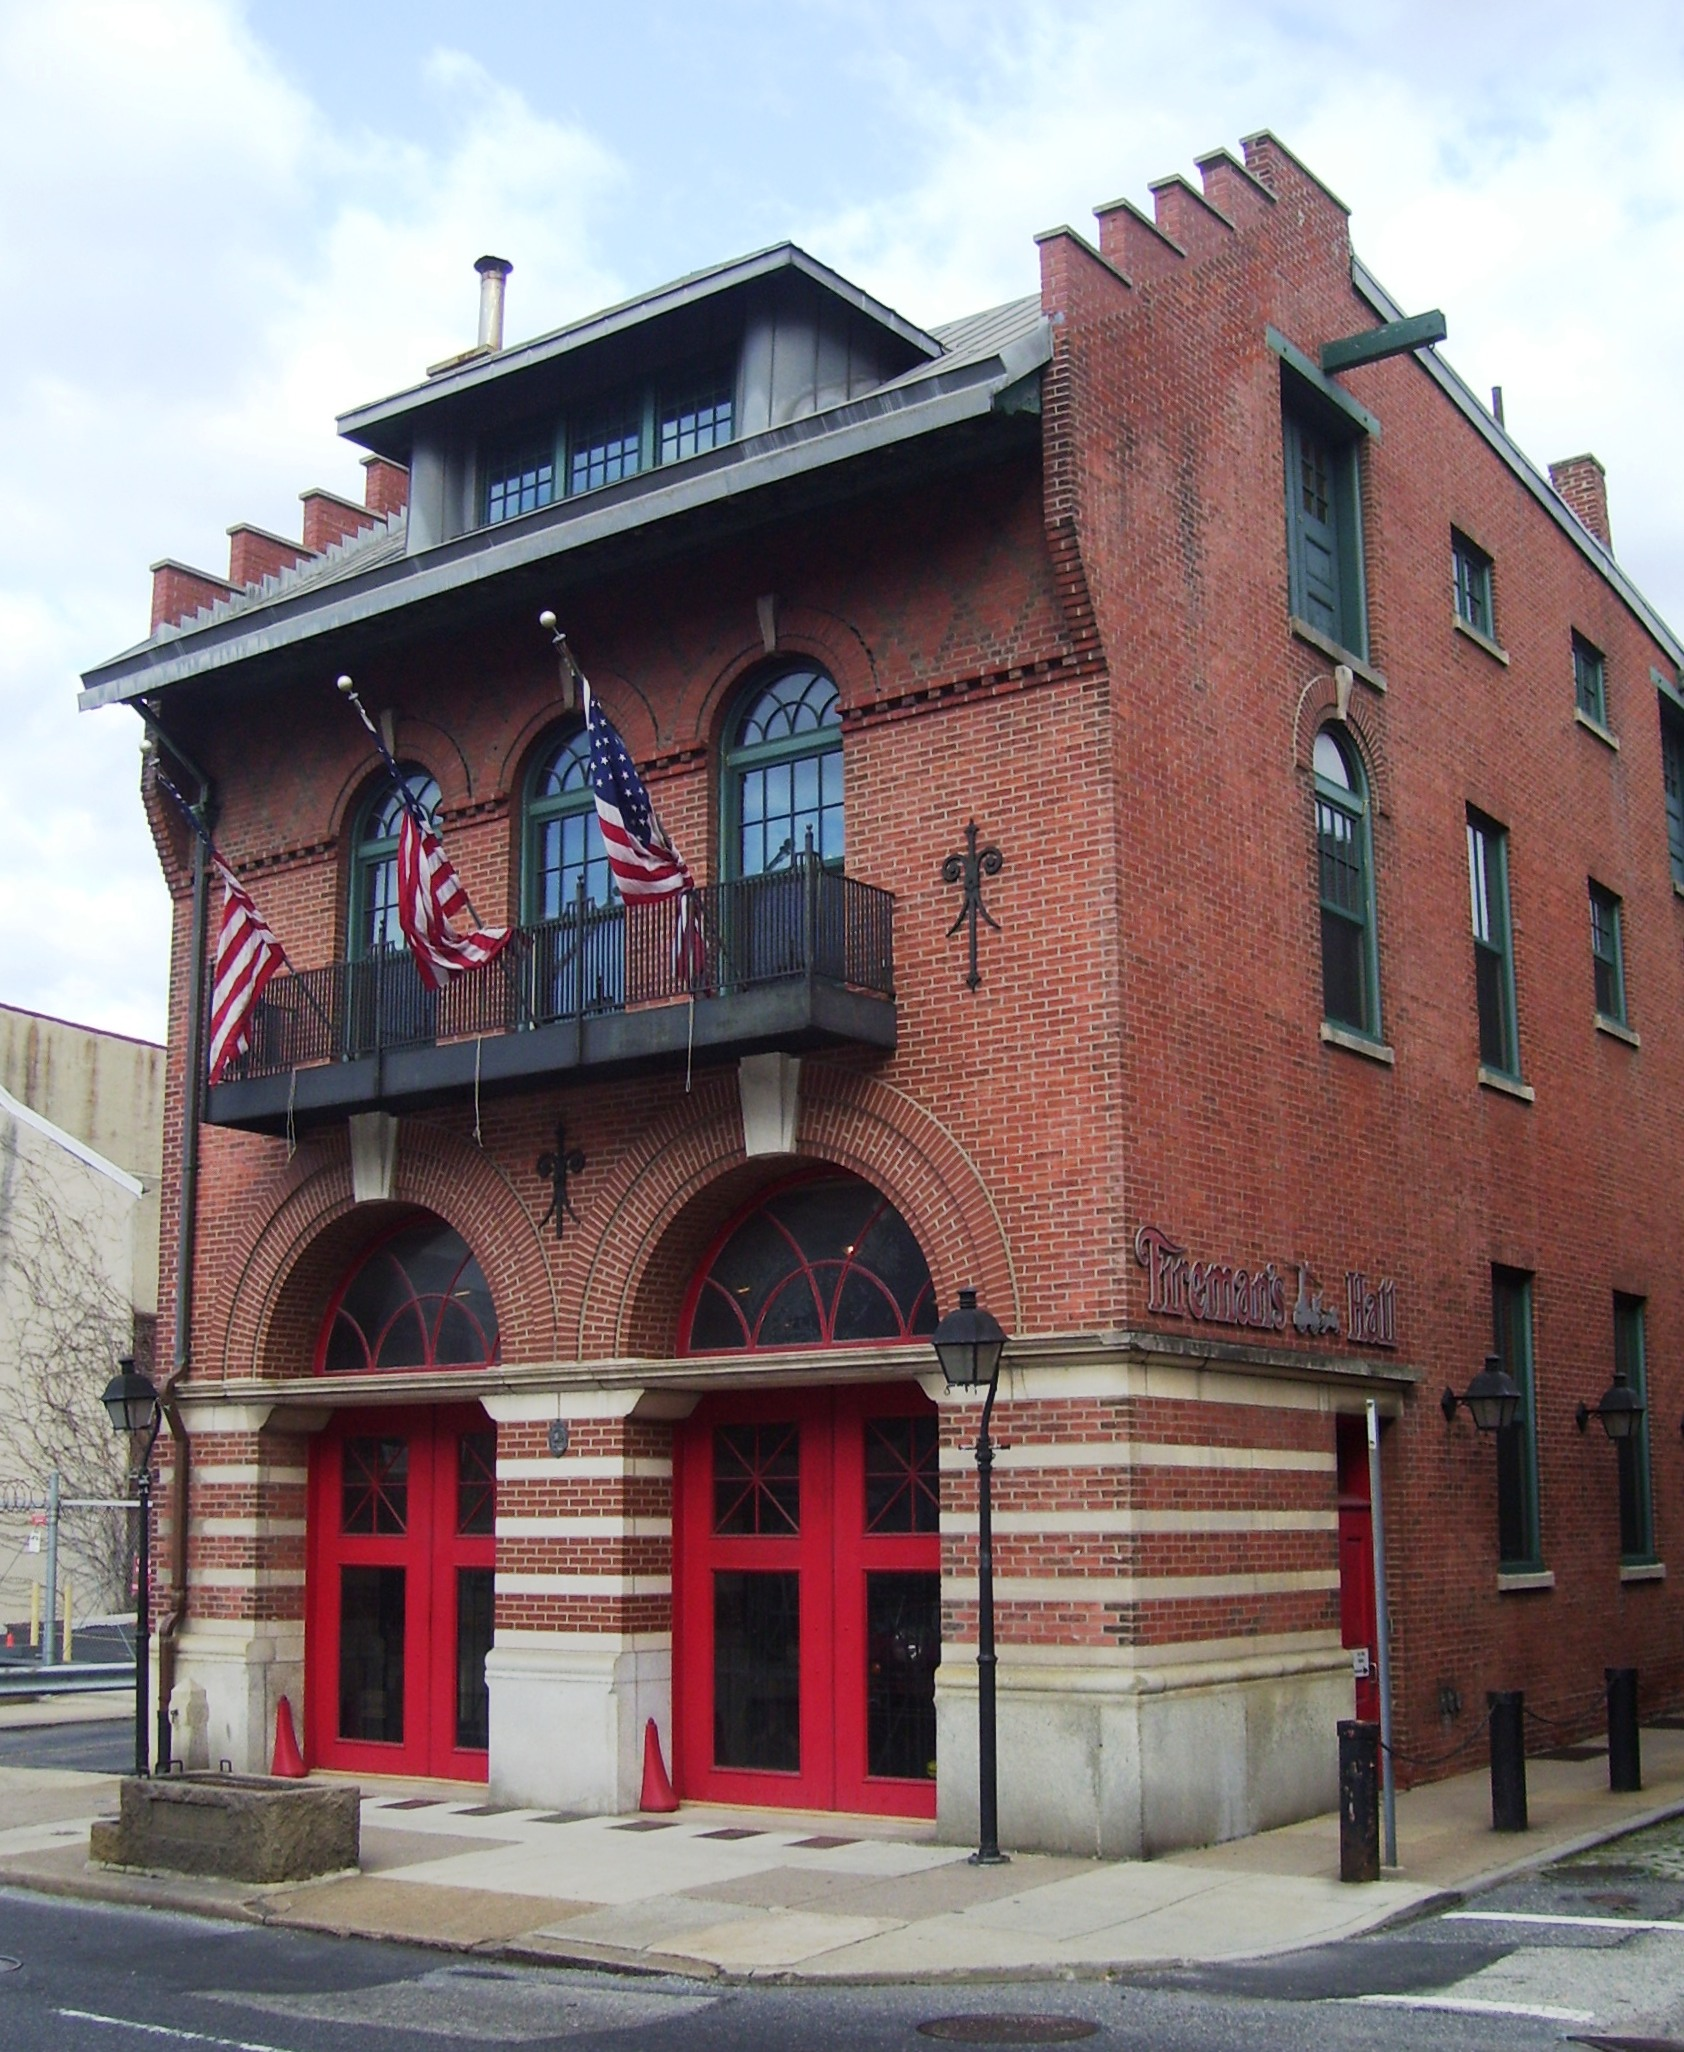 The old 1902 firehouse that's home to the Fireman's Hall Museum